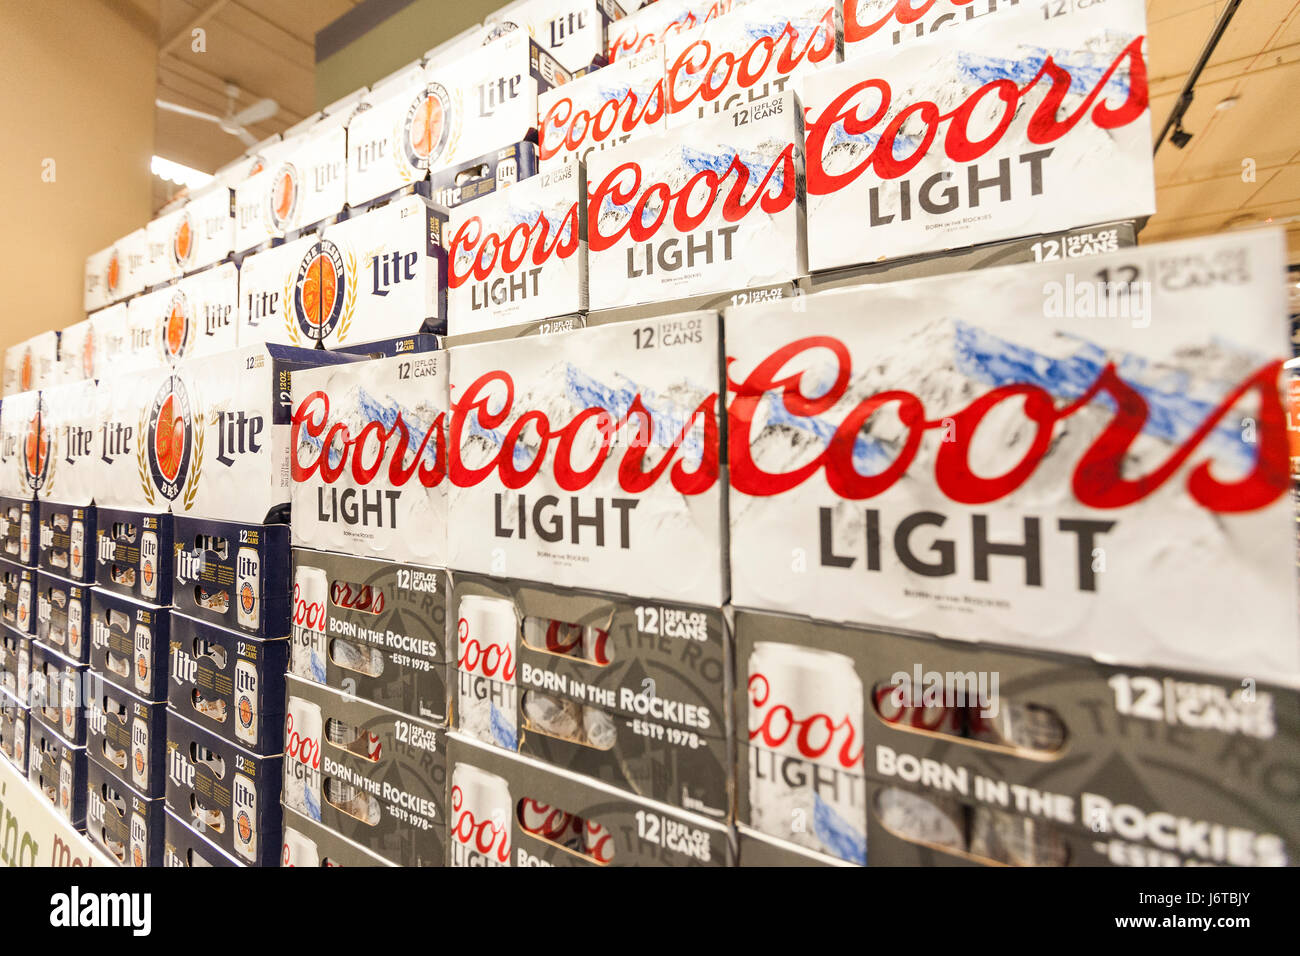 Cases of Coors Light and Miller Lite beer on display and for sale in a grocery store - Stock Image